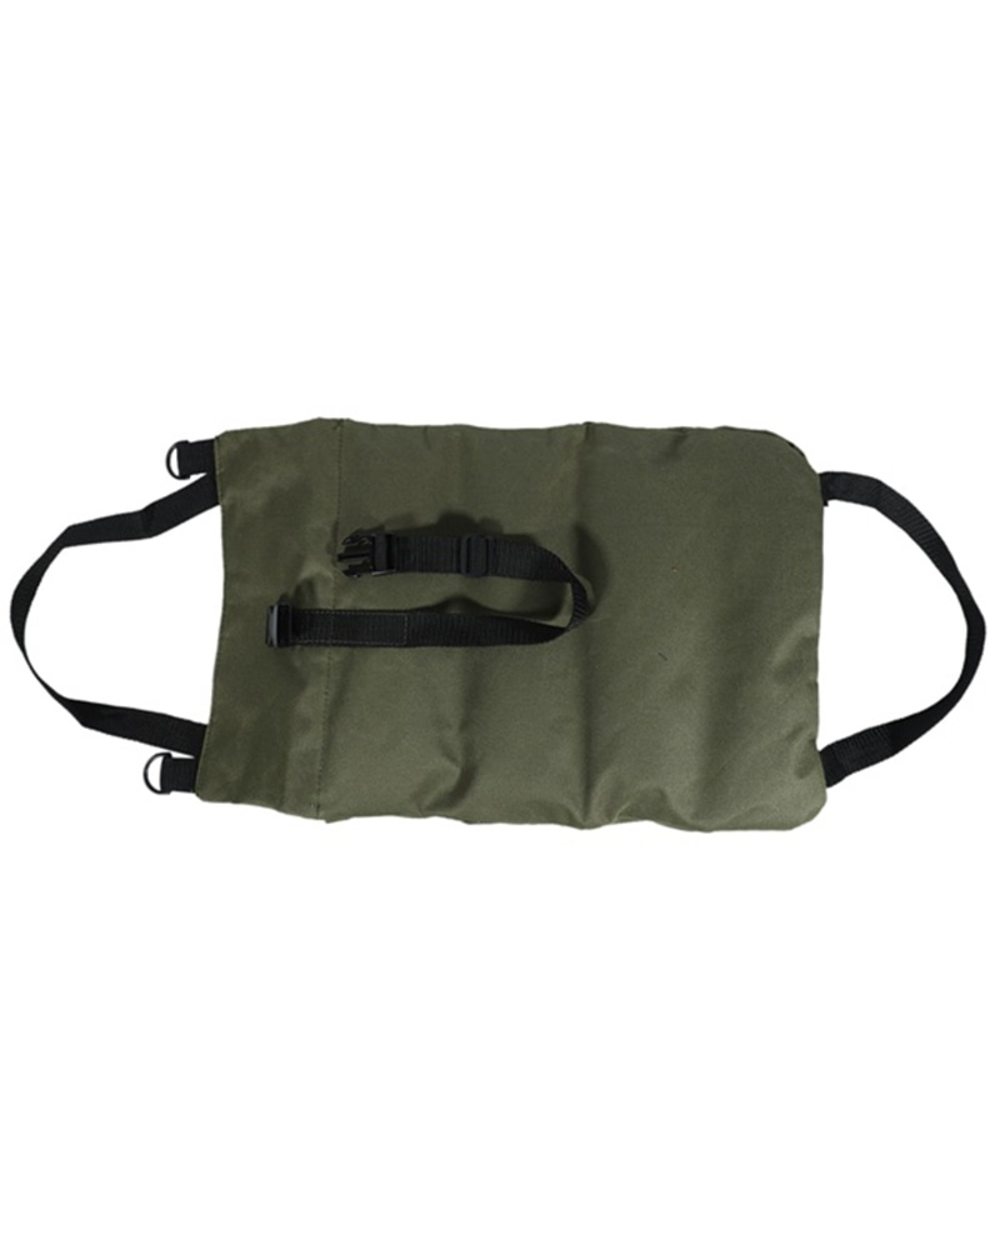 Multi-Purpose Zipper Carrier Roll Up Tote: Best Tool Pouch for Electricians  front-2